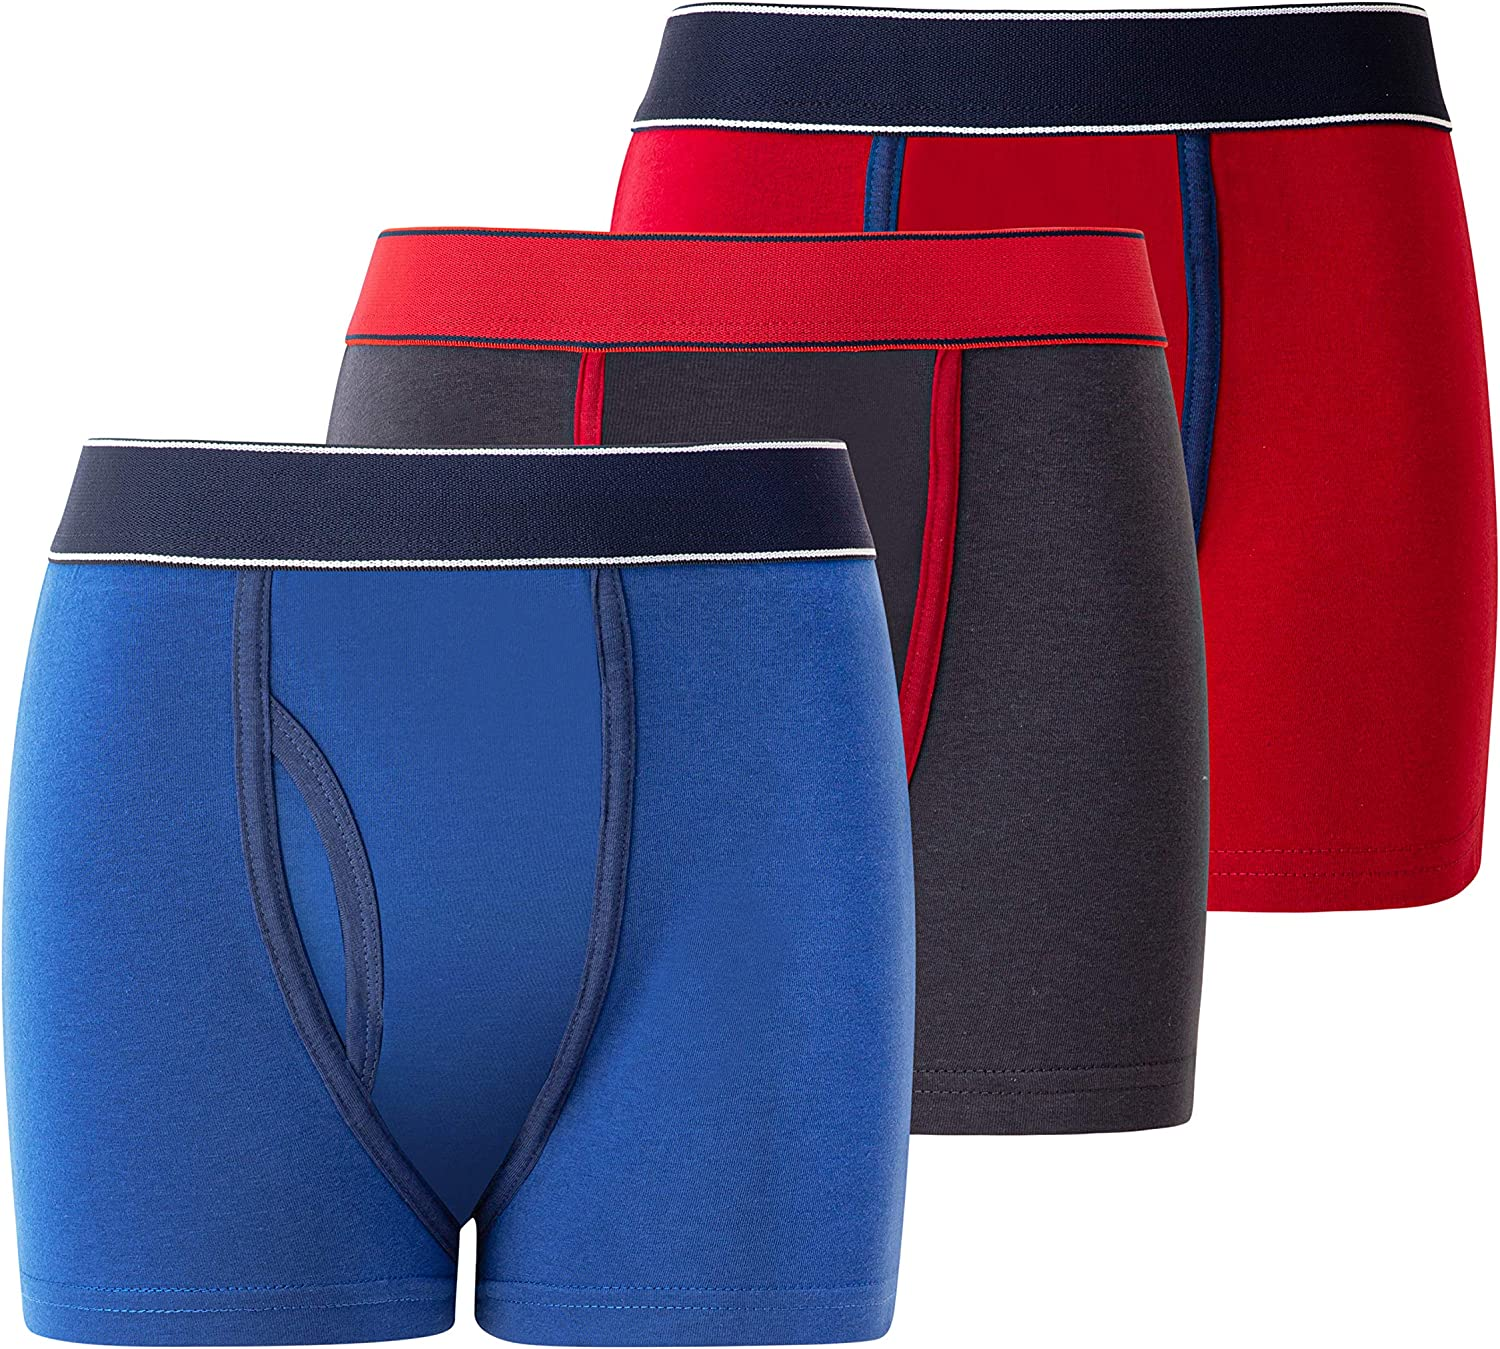 panzy 6//12 Pairs of Boys Boxer Trunks Shorts Quality Underwear Boxers with Keyhole